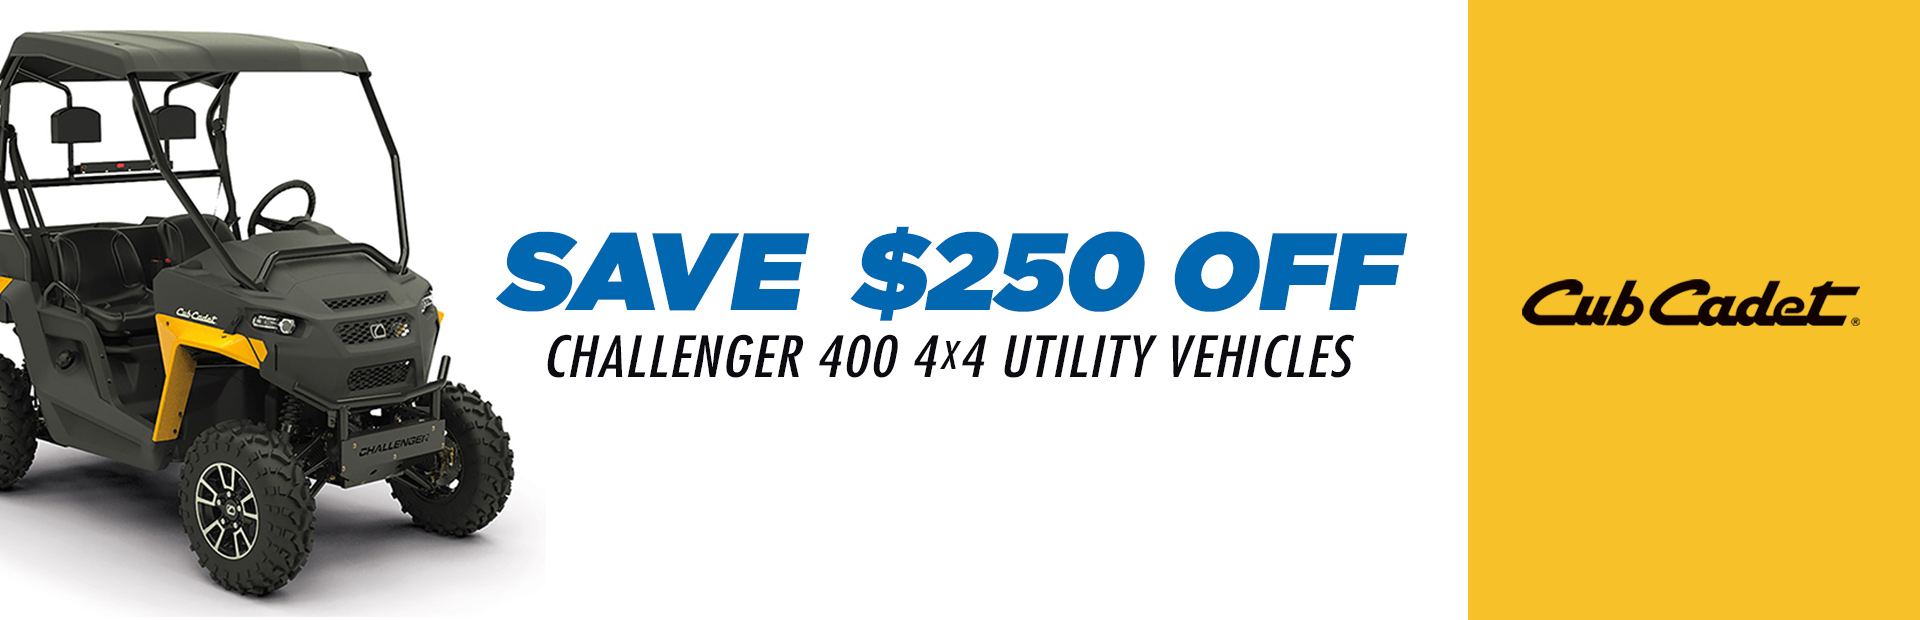 Cub Cadet: SAVE $250 OFF CHALLENGER 400 4X4 UTILITY VEHICLES